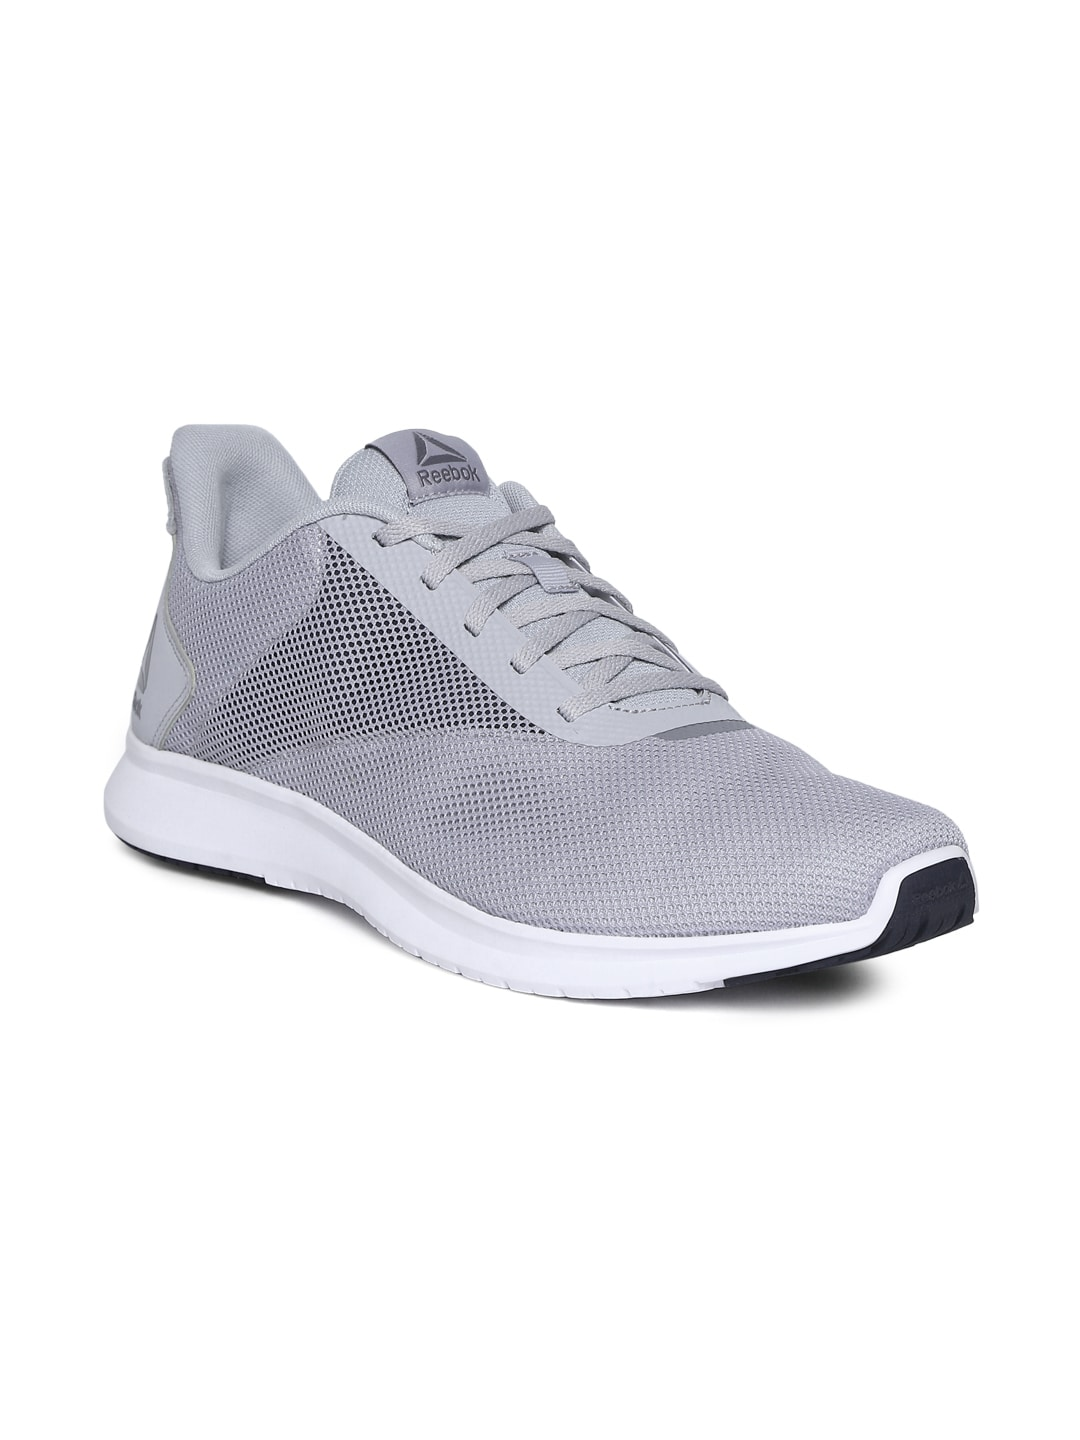 save off a36c0 1e155 Shoes - Buy Shoes for Men, Women   Kids online in India - Myntra